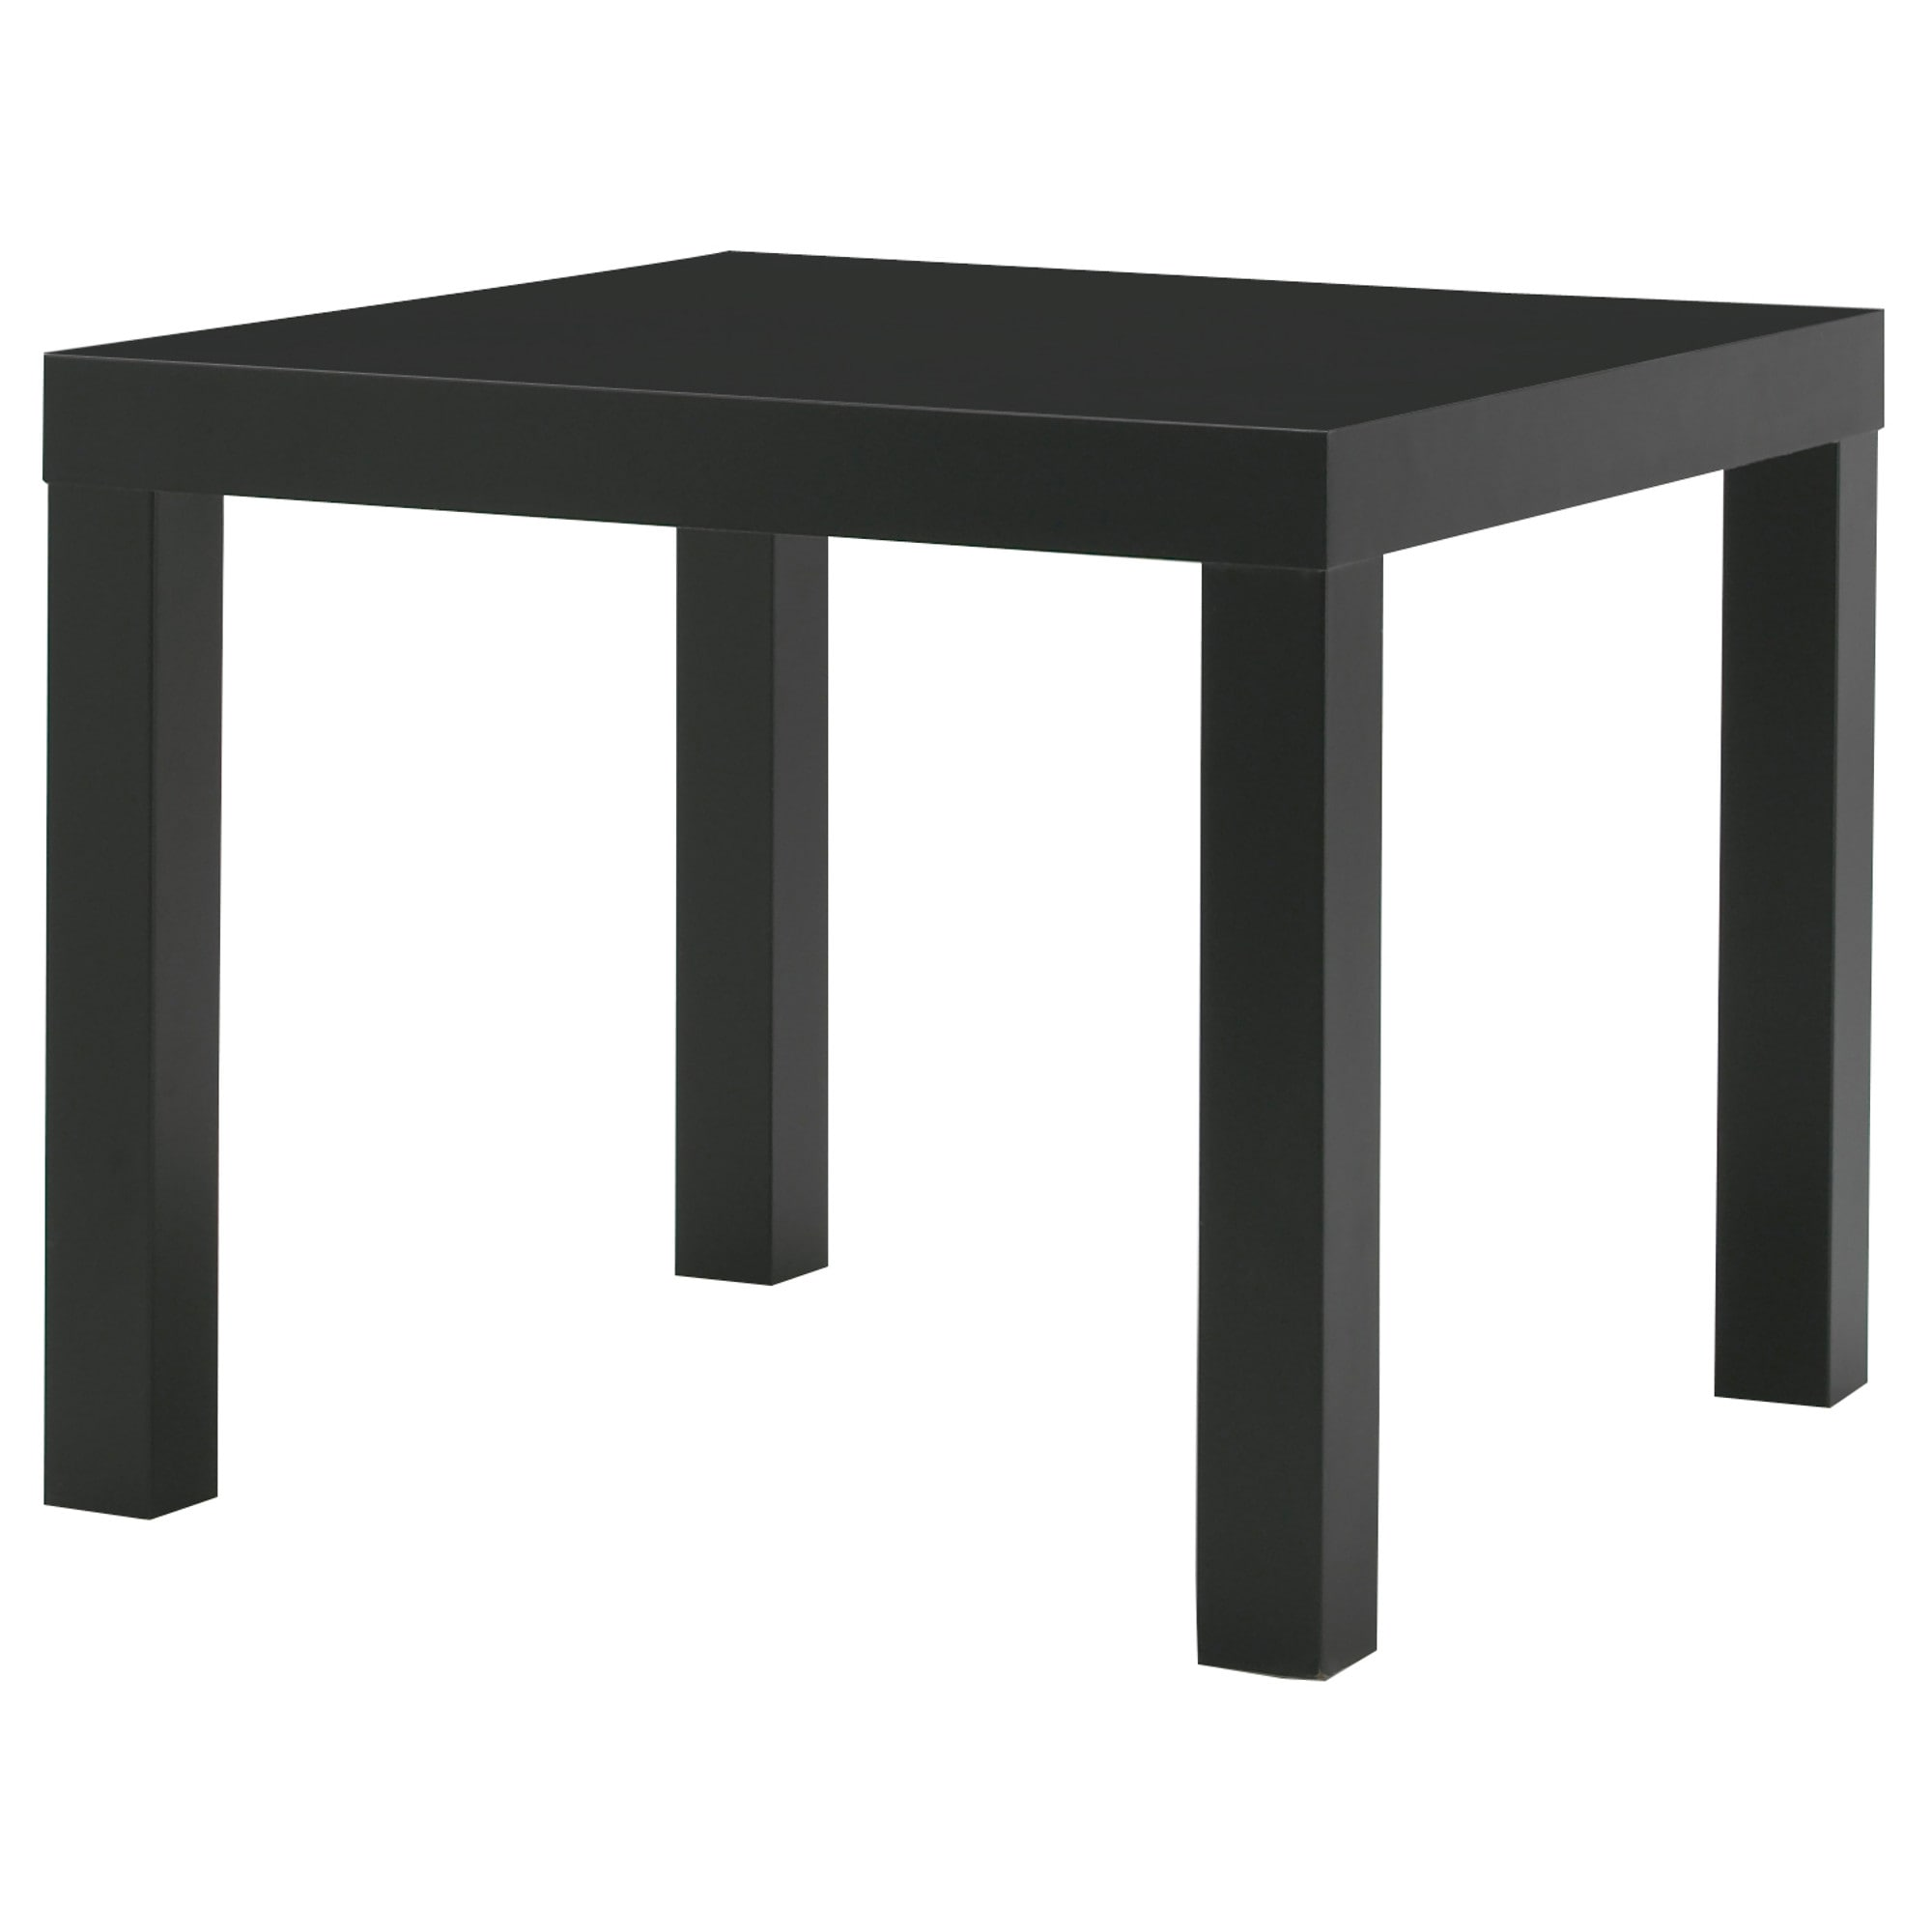 "LACK Side table black brown 21 5 8x21 5 8 "" IKEA"